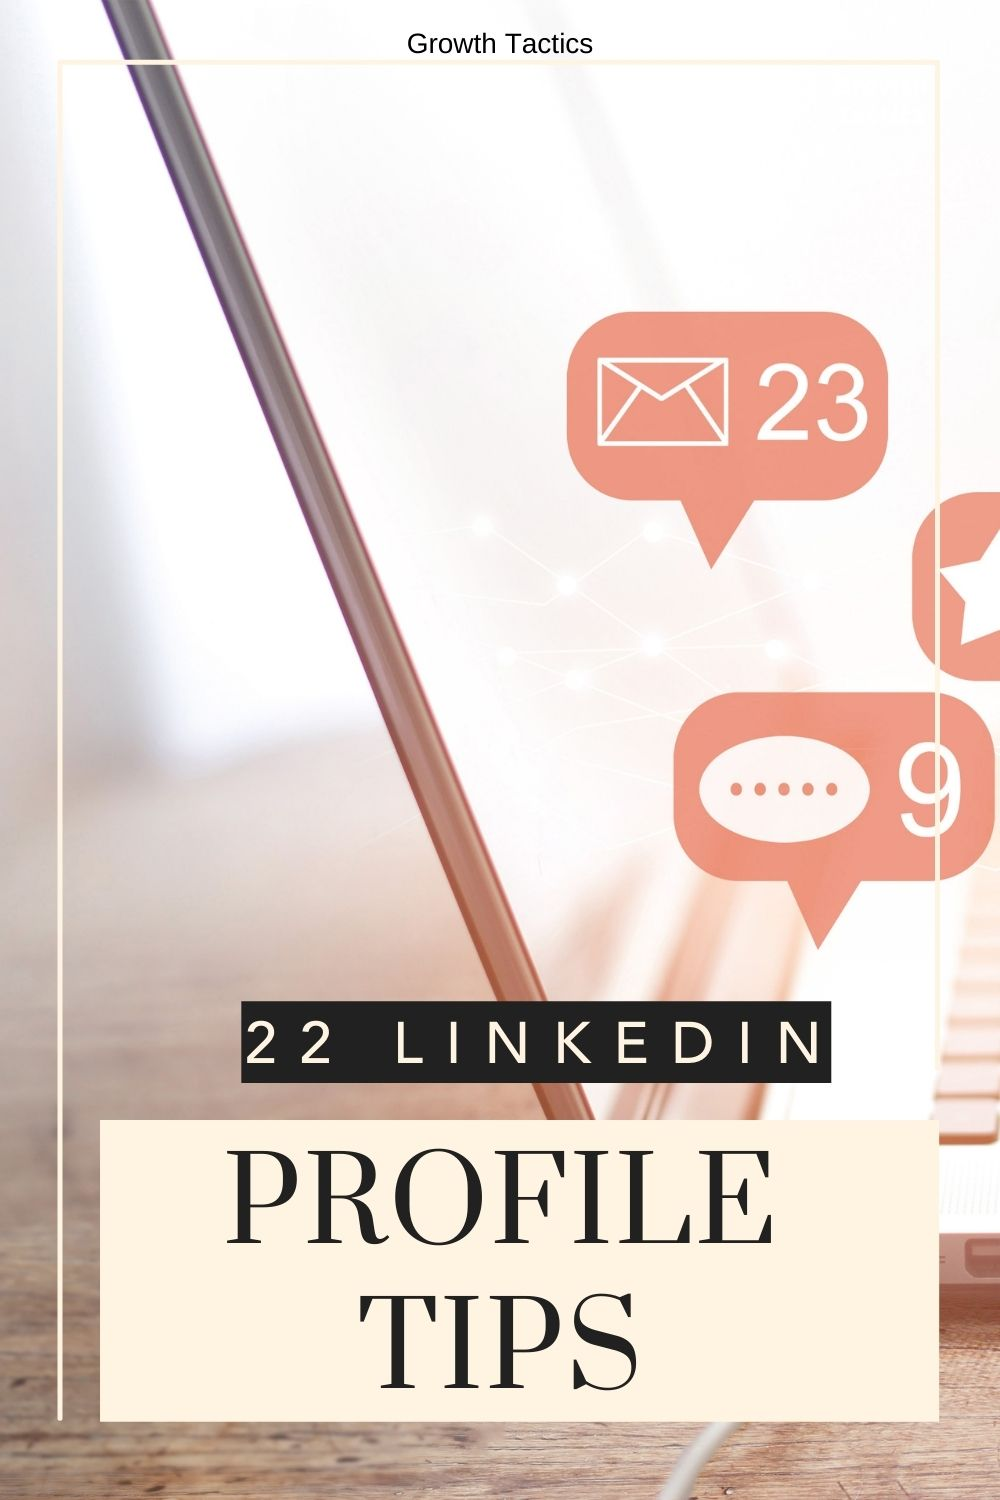 Pinterest image for 22 LinkedIn Profile Tips to Build an Awesome Profile article.